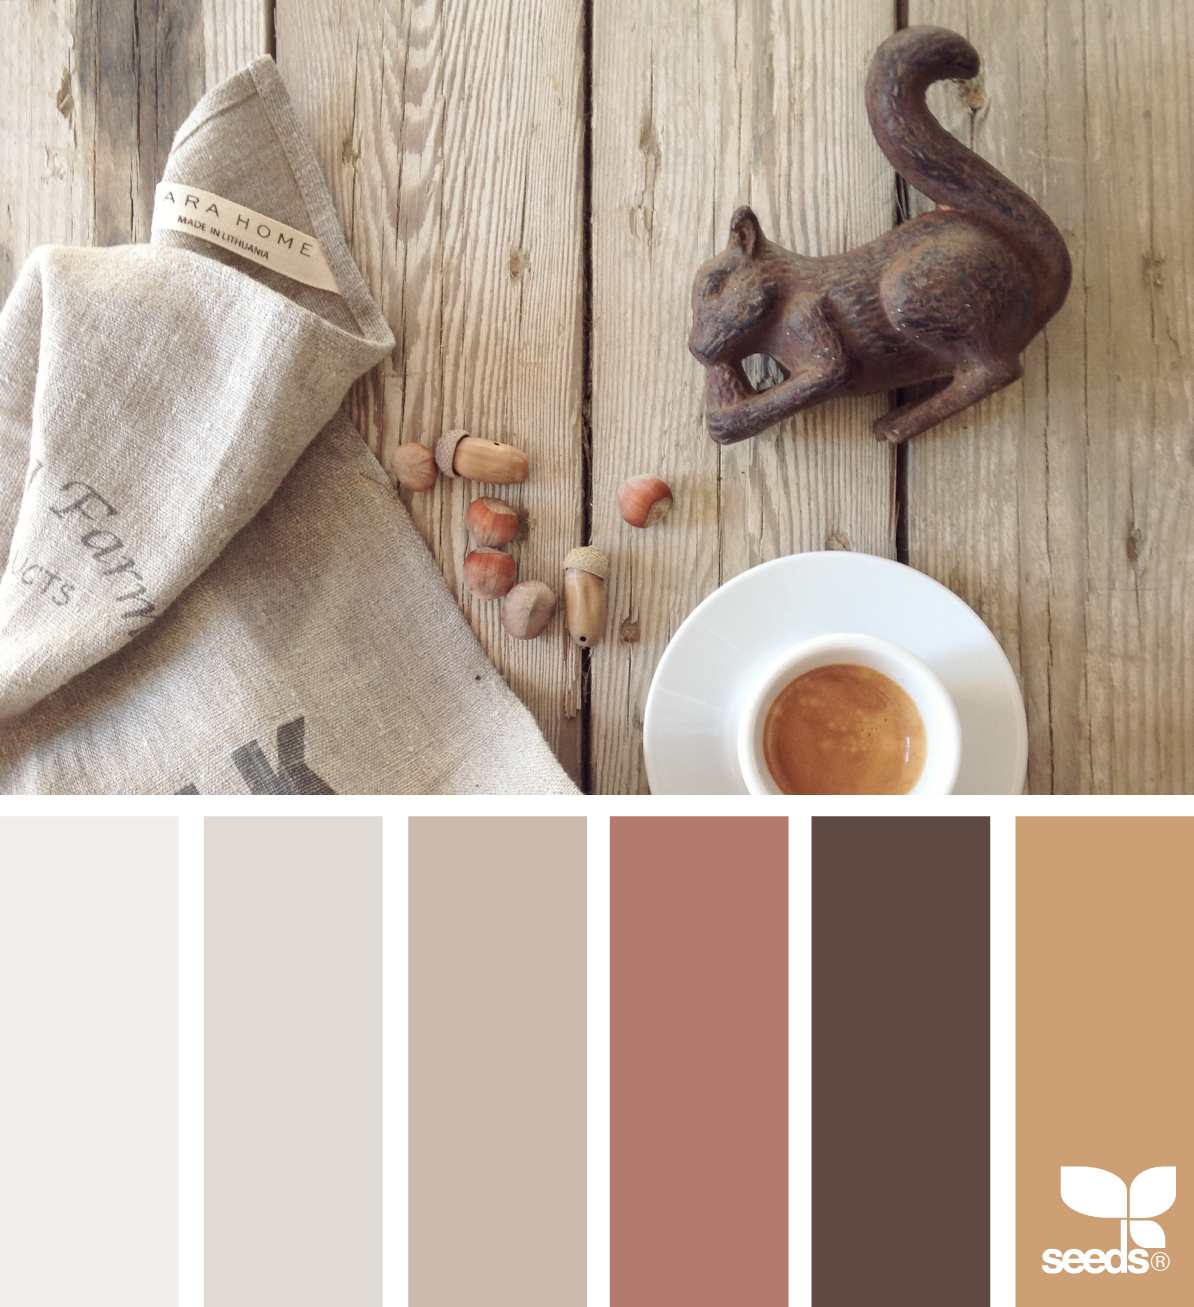 Farbe Nut Color Nut Rustic House Colors House Color Schemes